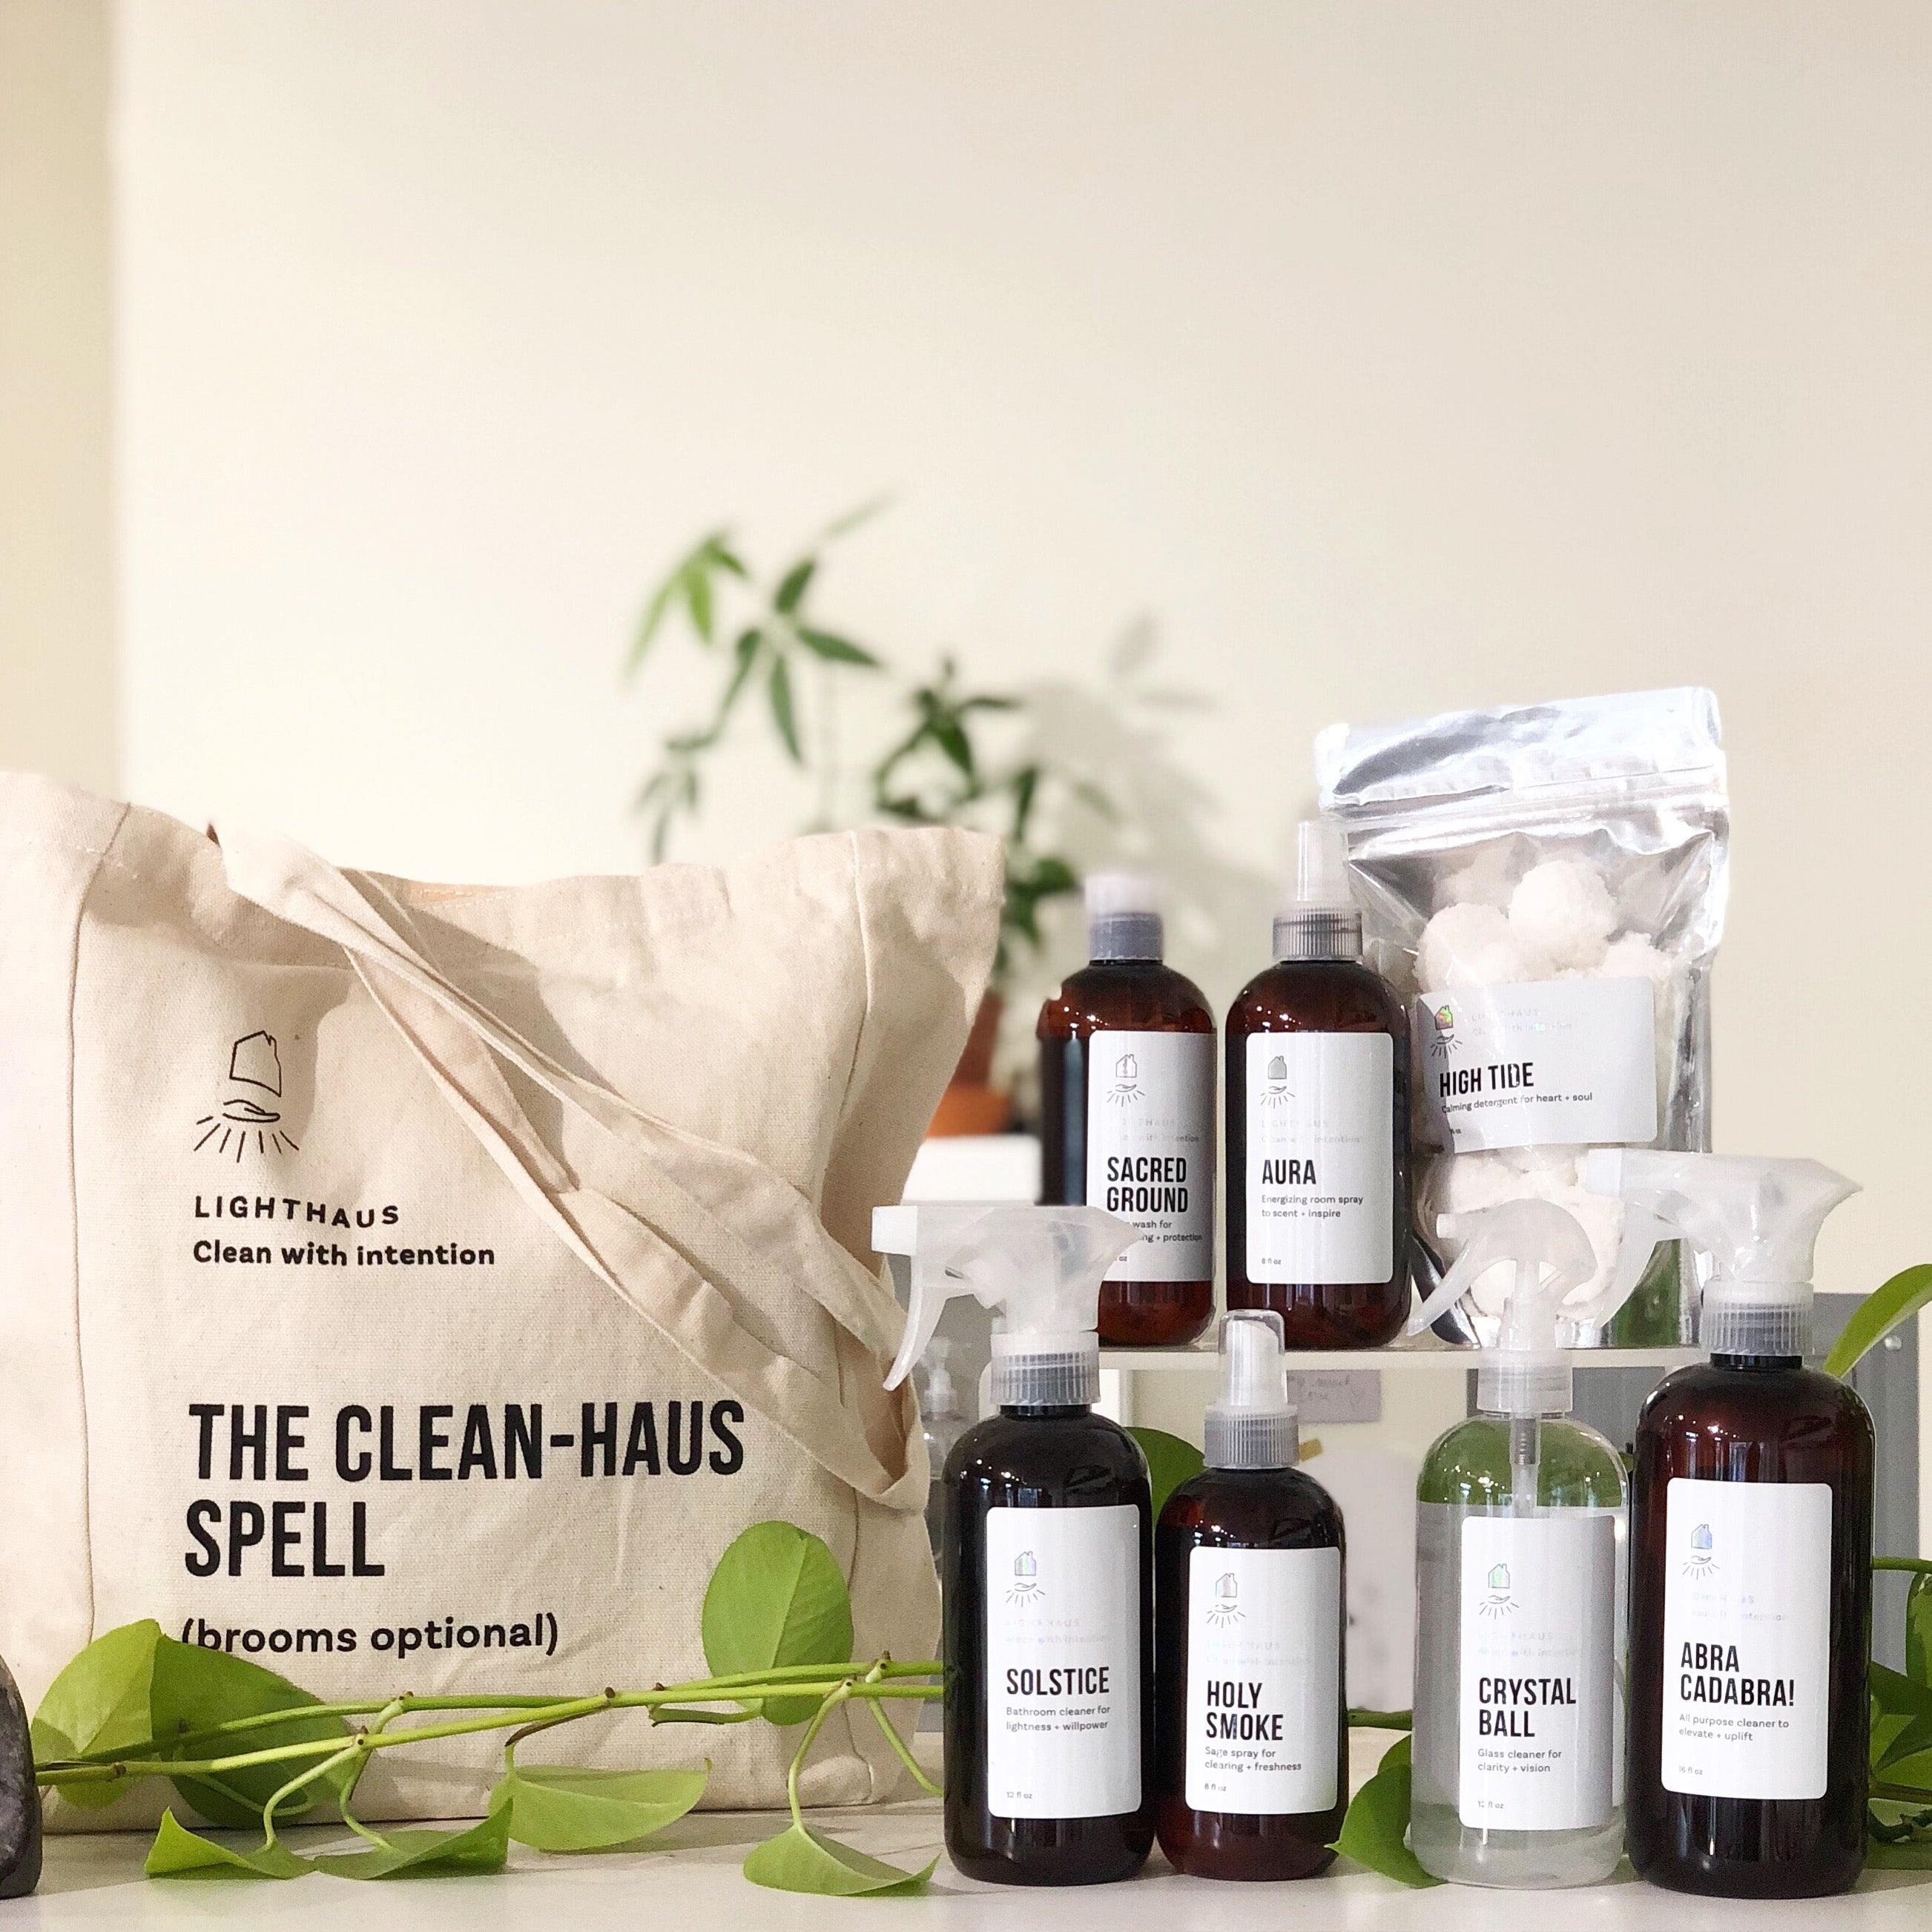 LightHaus Cleaning Products